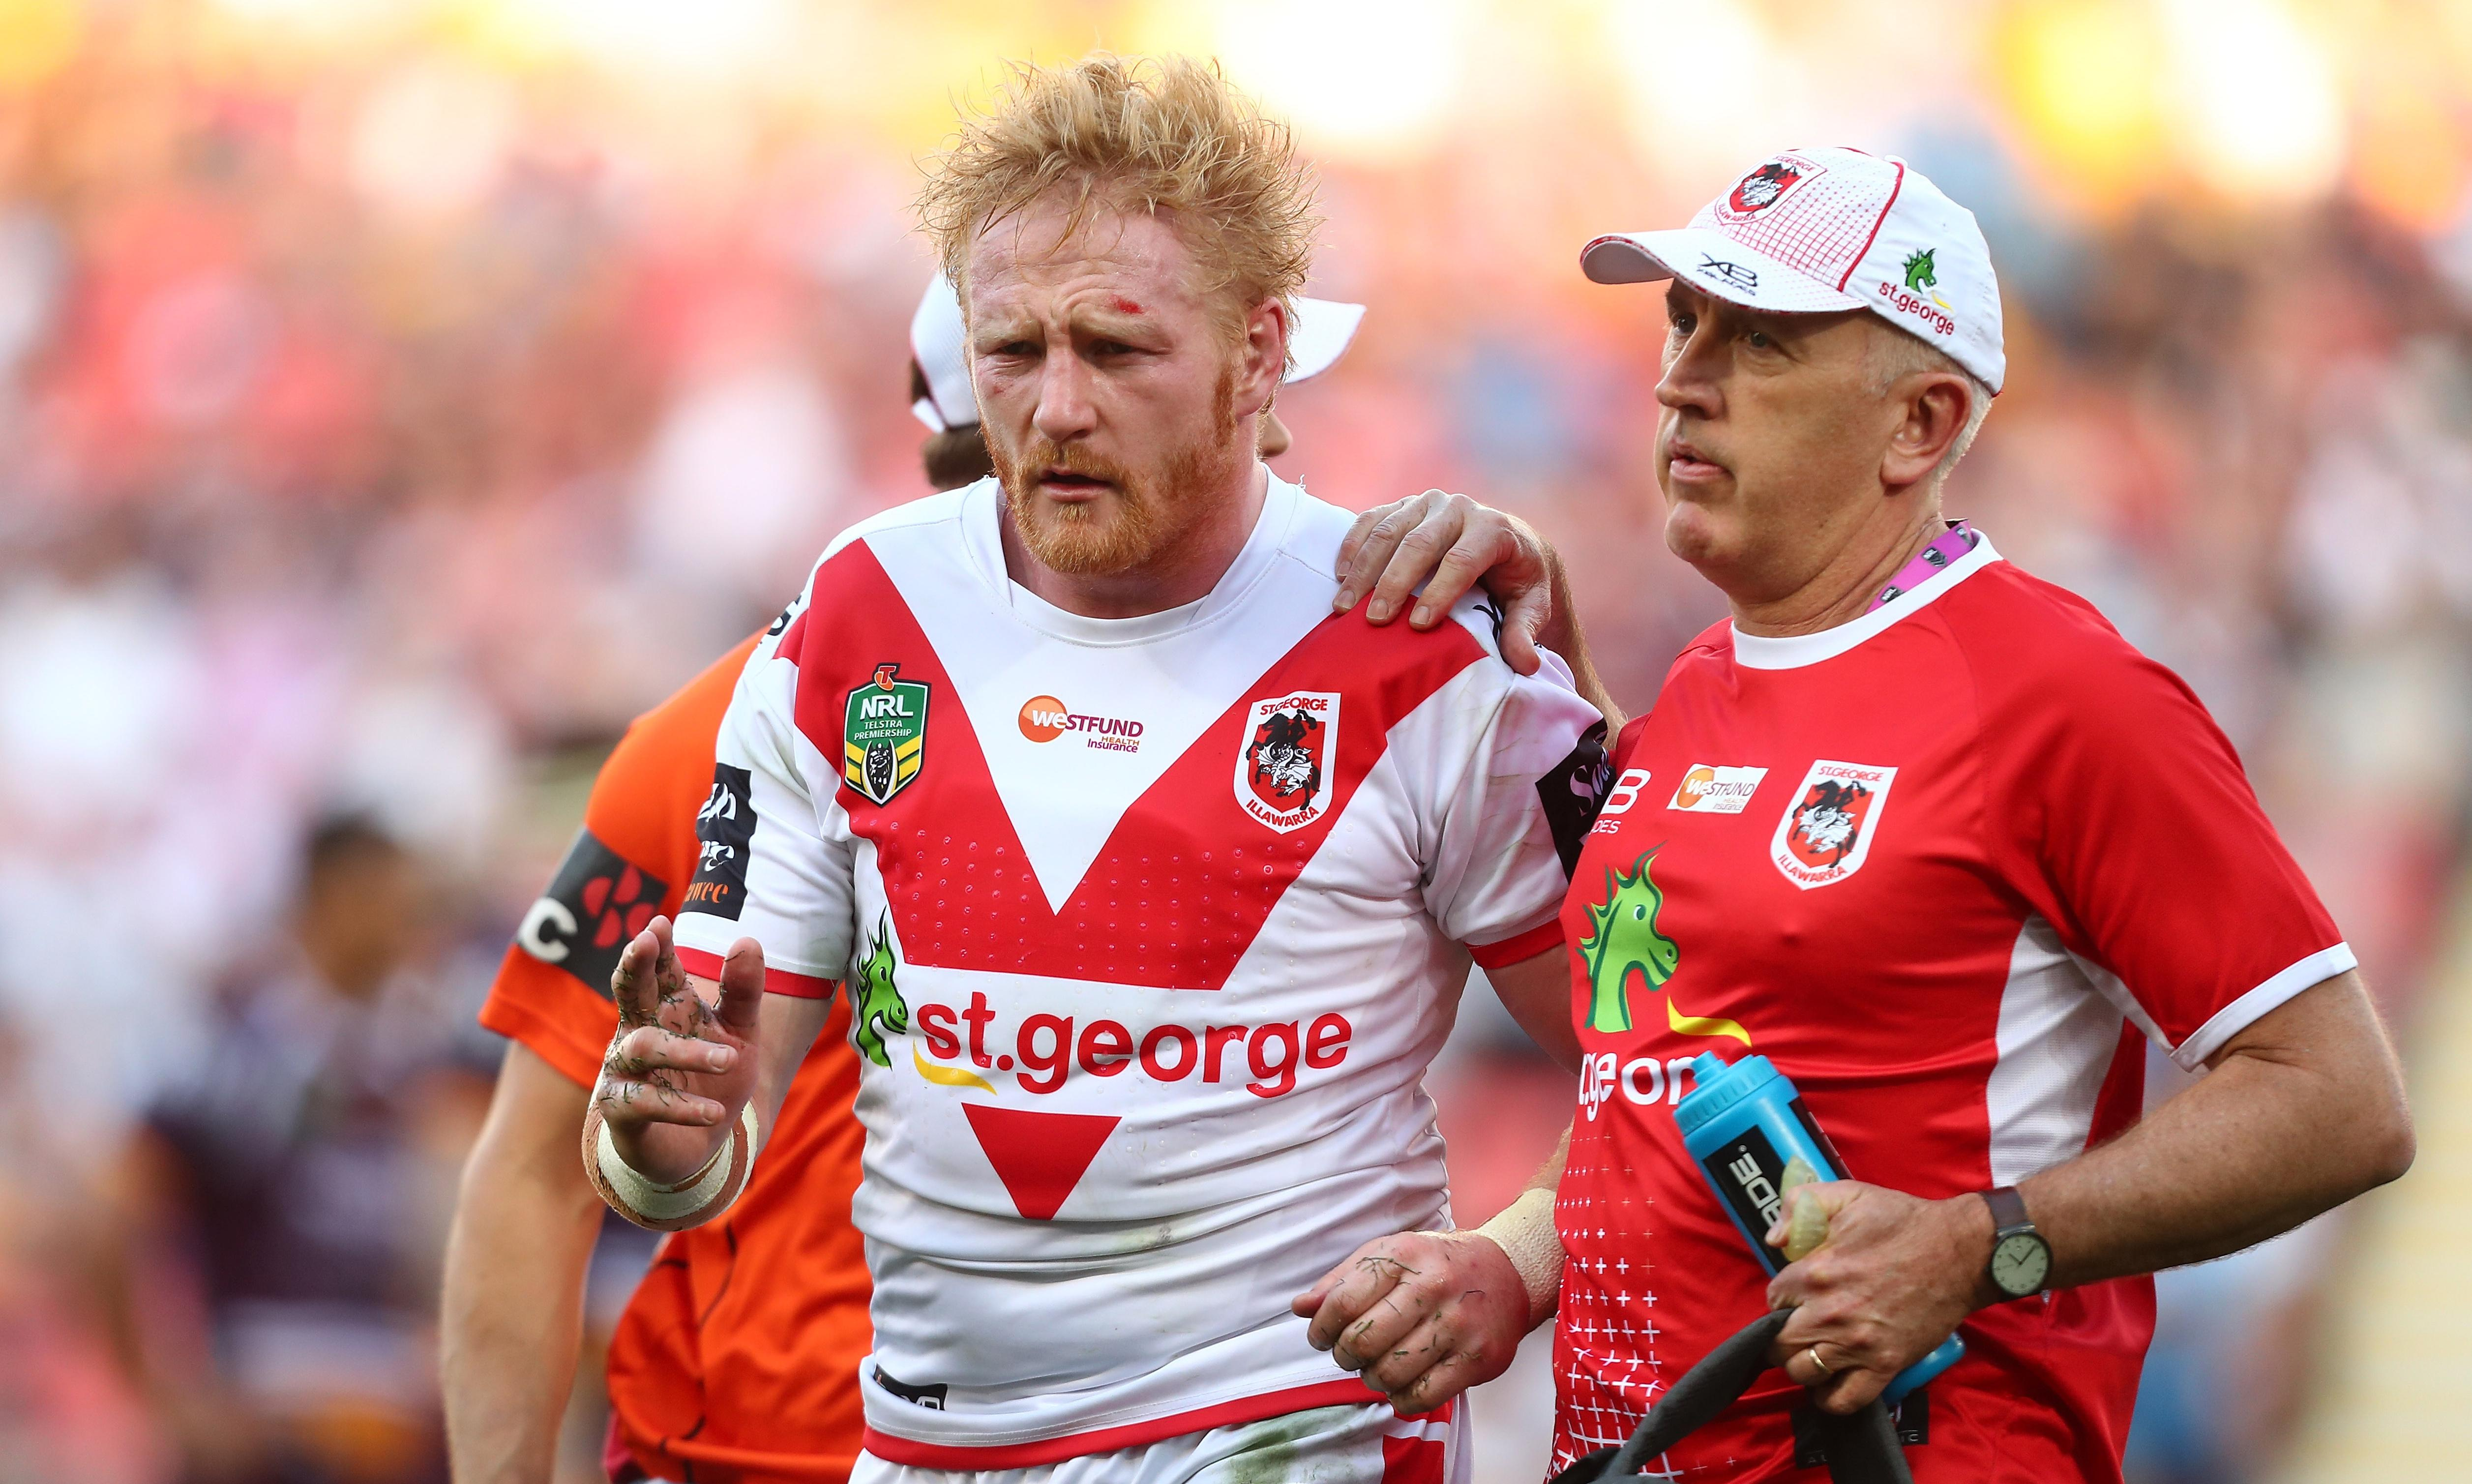 Concussions in sport: I stopped playing after sustaining head knocks